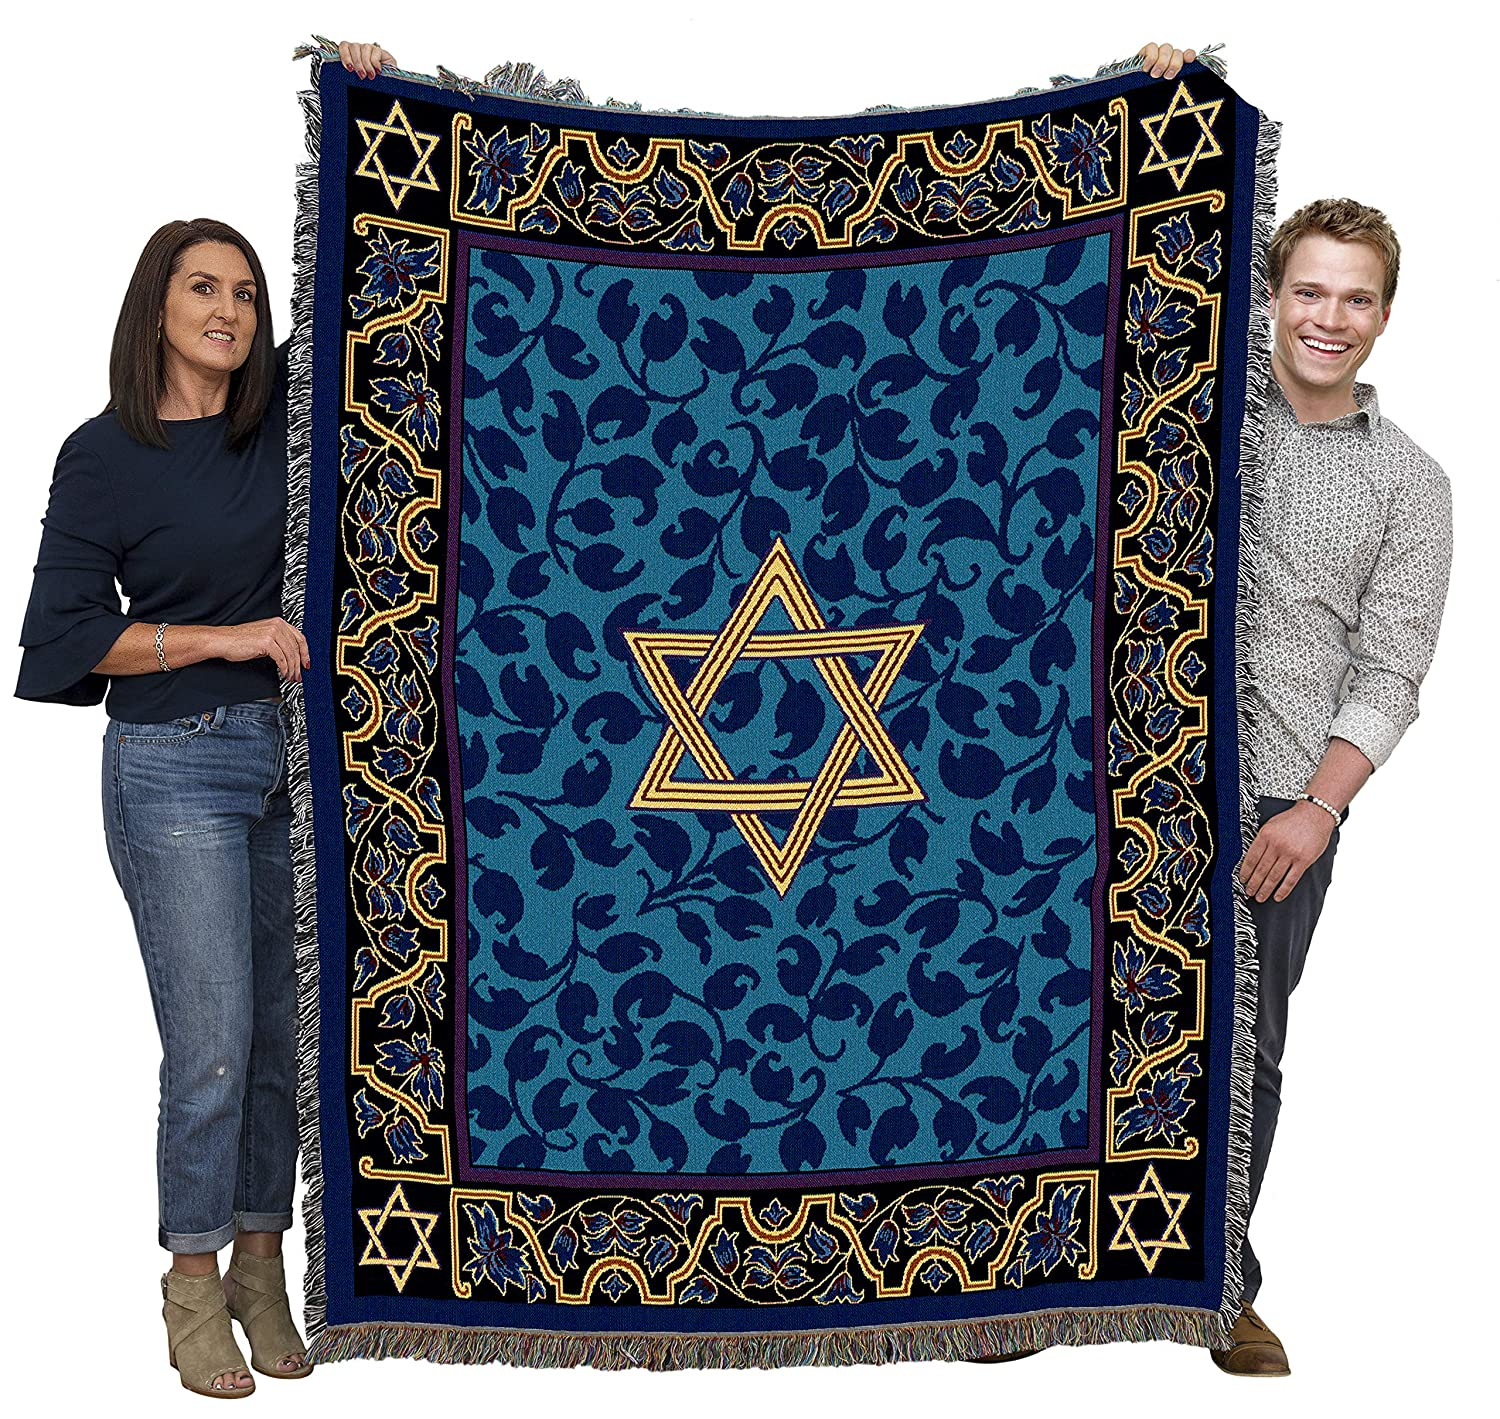 Pure Country Weavers - Magen David Star Woven Large Soft Comforting Throw Blanket with Artistic Textured Design Cotton USA 72x54